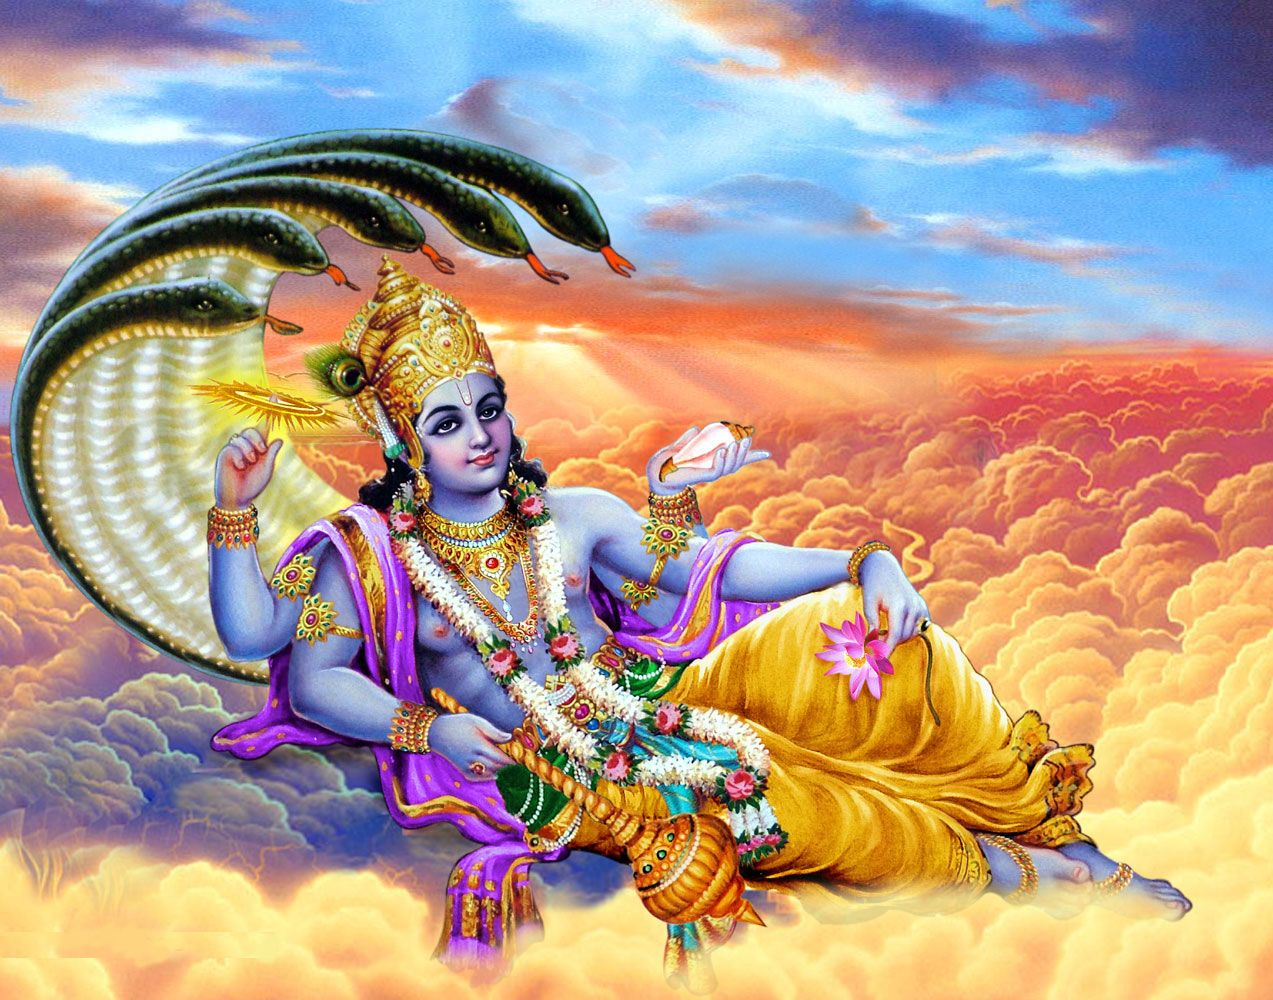 Free Download Lord Vishnu Images Photos Wallpaper Pictures For Desktop Computer Mobile And Tablet Screen Lord Vishnu Vishnu Lord Vishnu Wallpapers